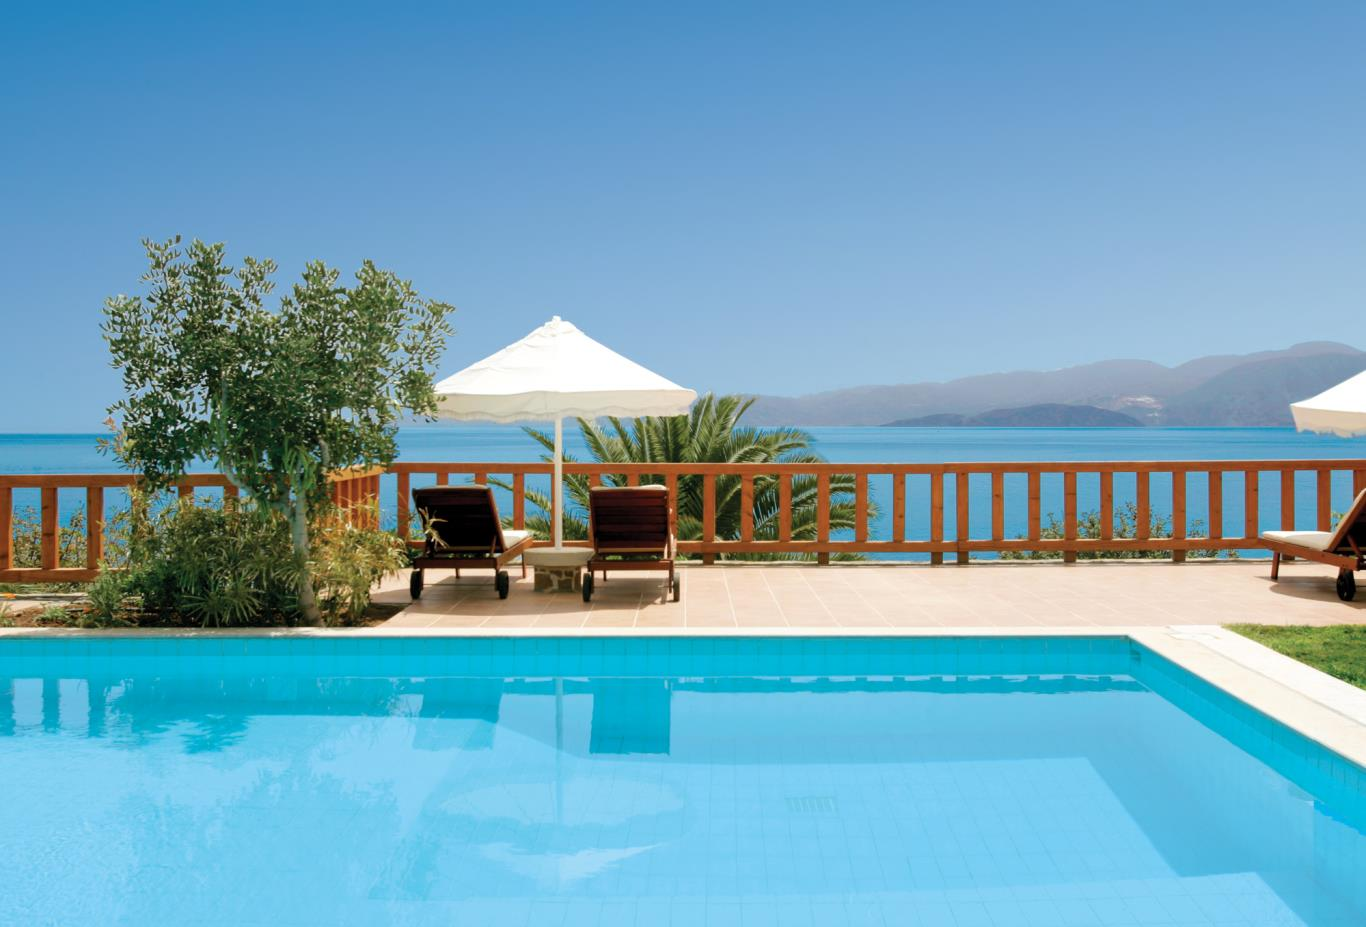 King Minos private pool